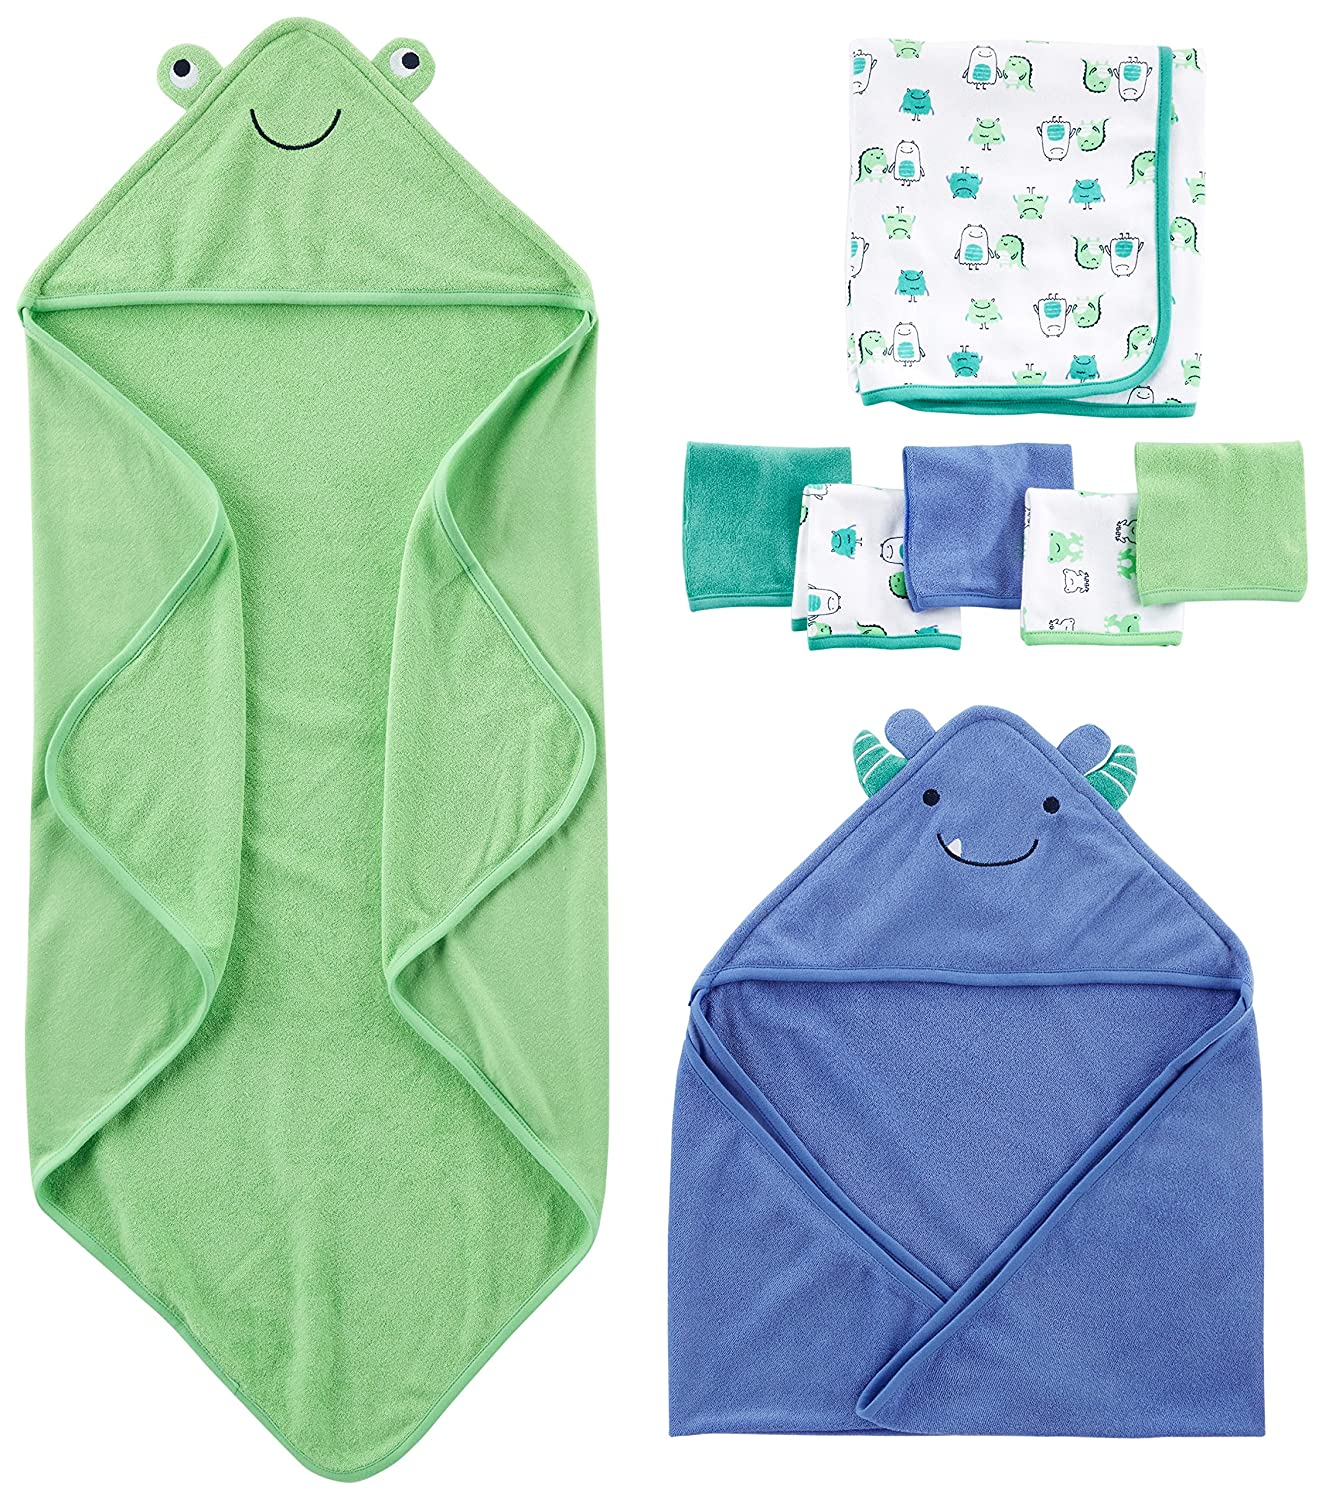 Simple Joys by Carter's Baby Boys' 8-Piece Towel and Washcloth Set, Blue/Green, One Size Simple Joys by Carter' s A26G032